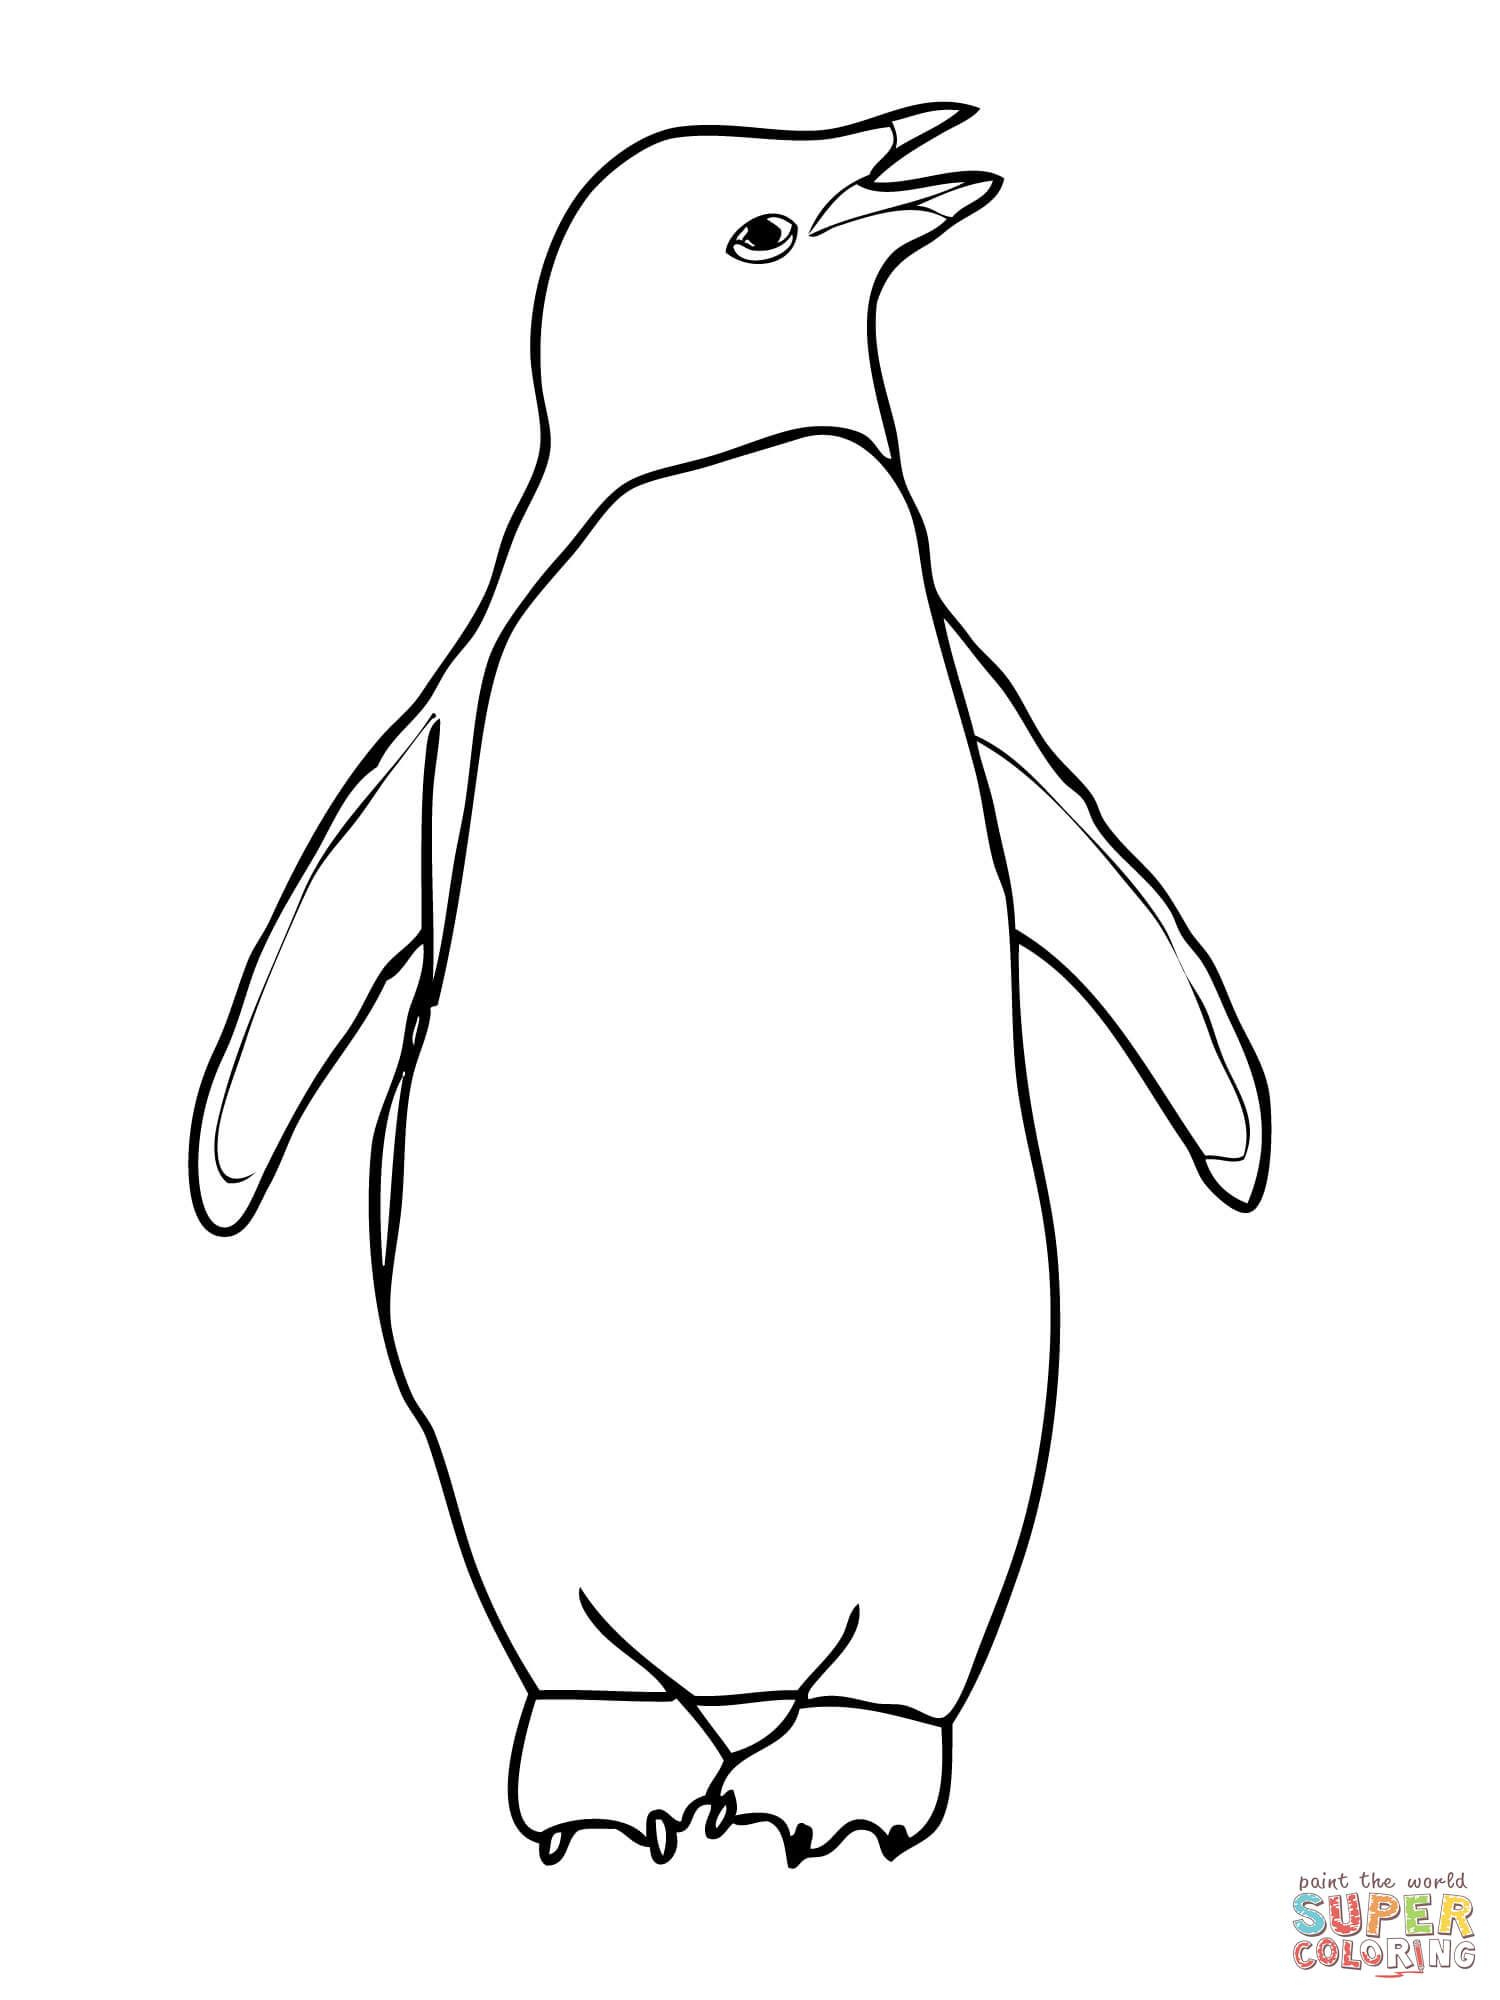 Adelie Penguin Coloring Page | Free Printable Coloring Pages - Free Printable Penguin Books